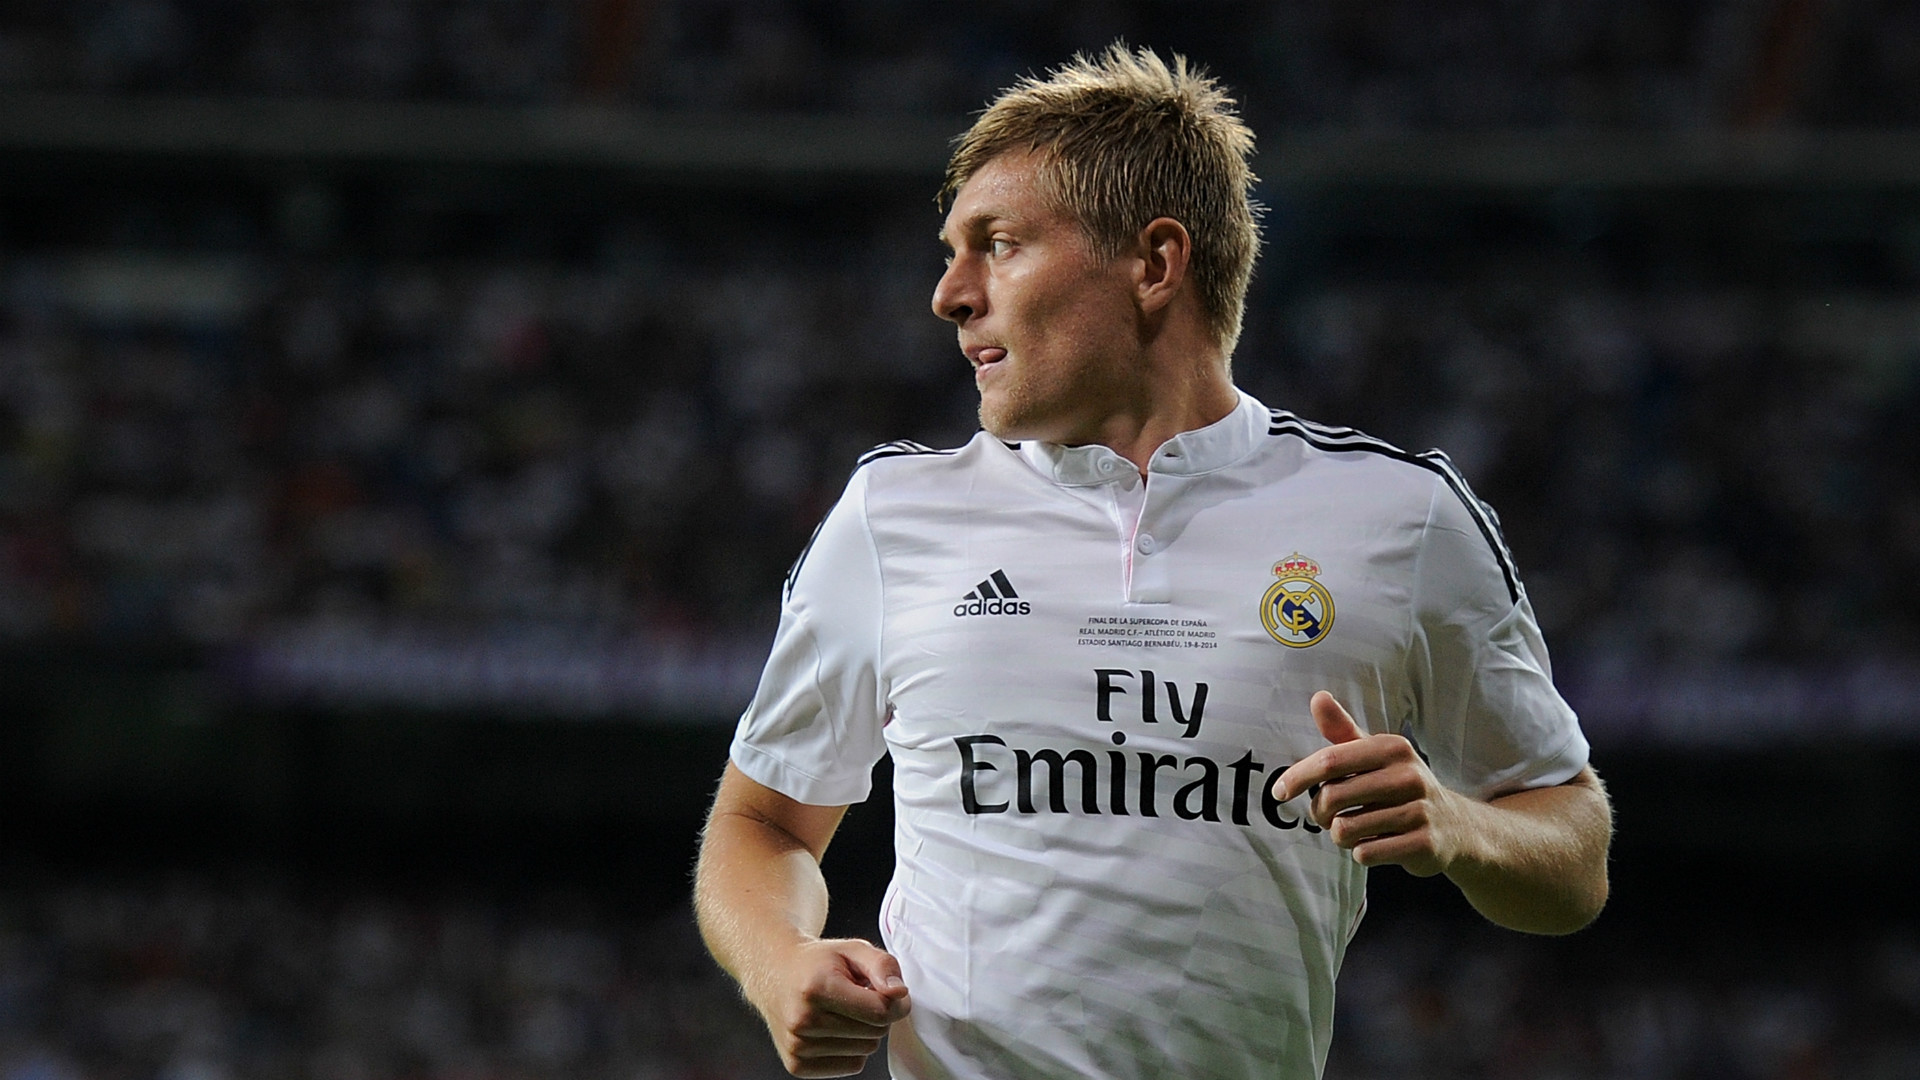 Toni Kroos Football Soccer Player Free Background Download Wallpapers